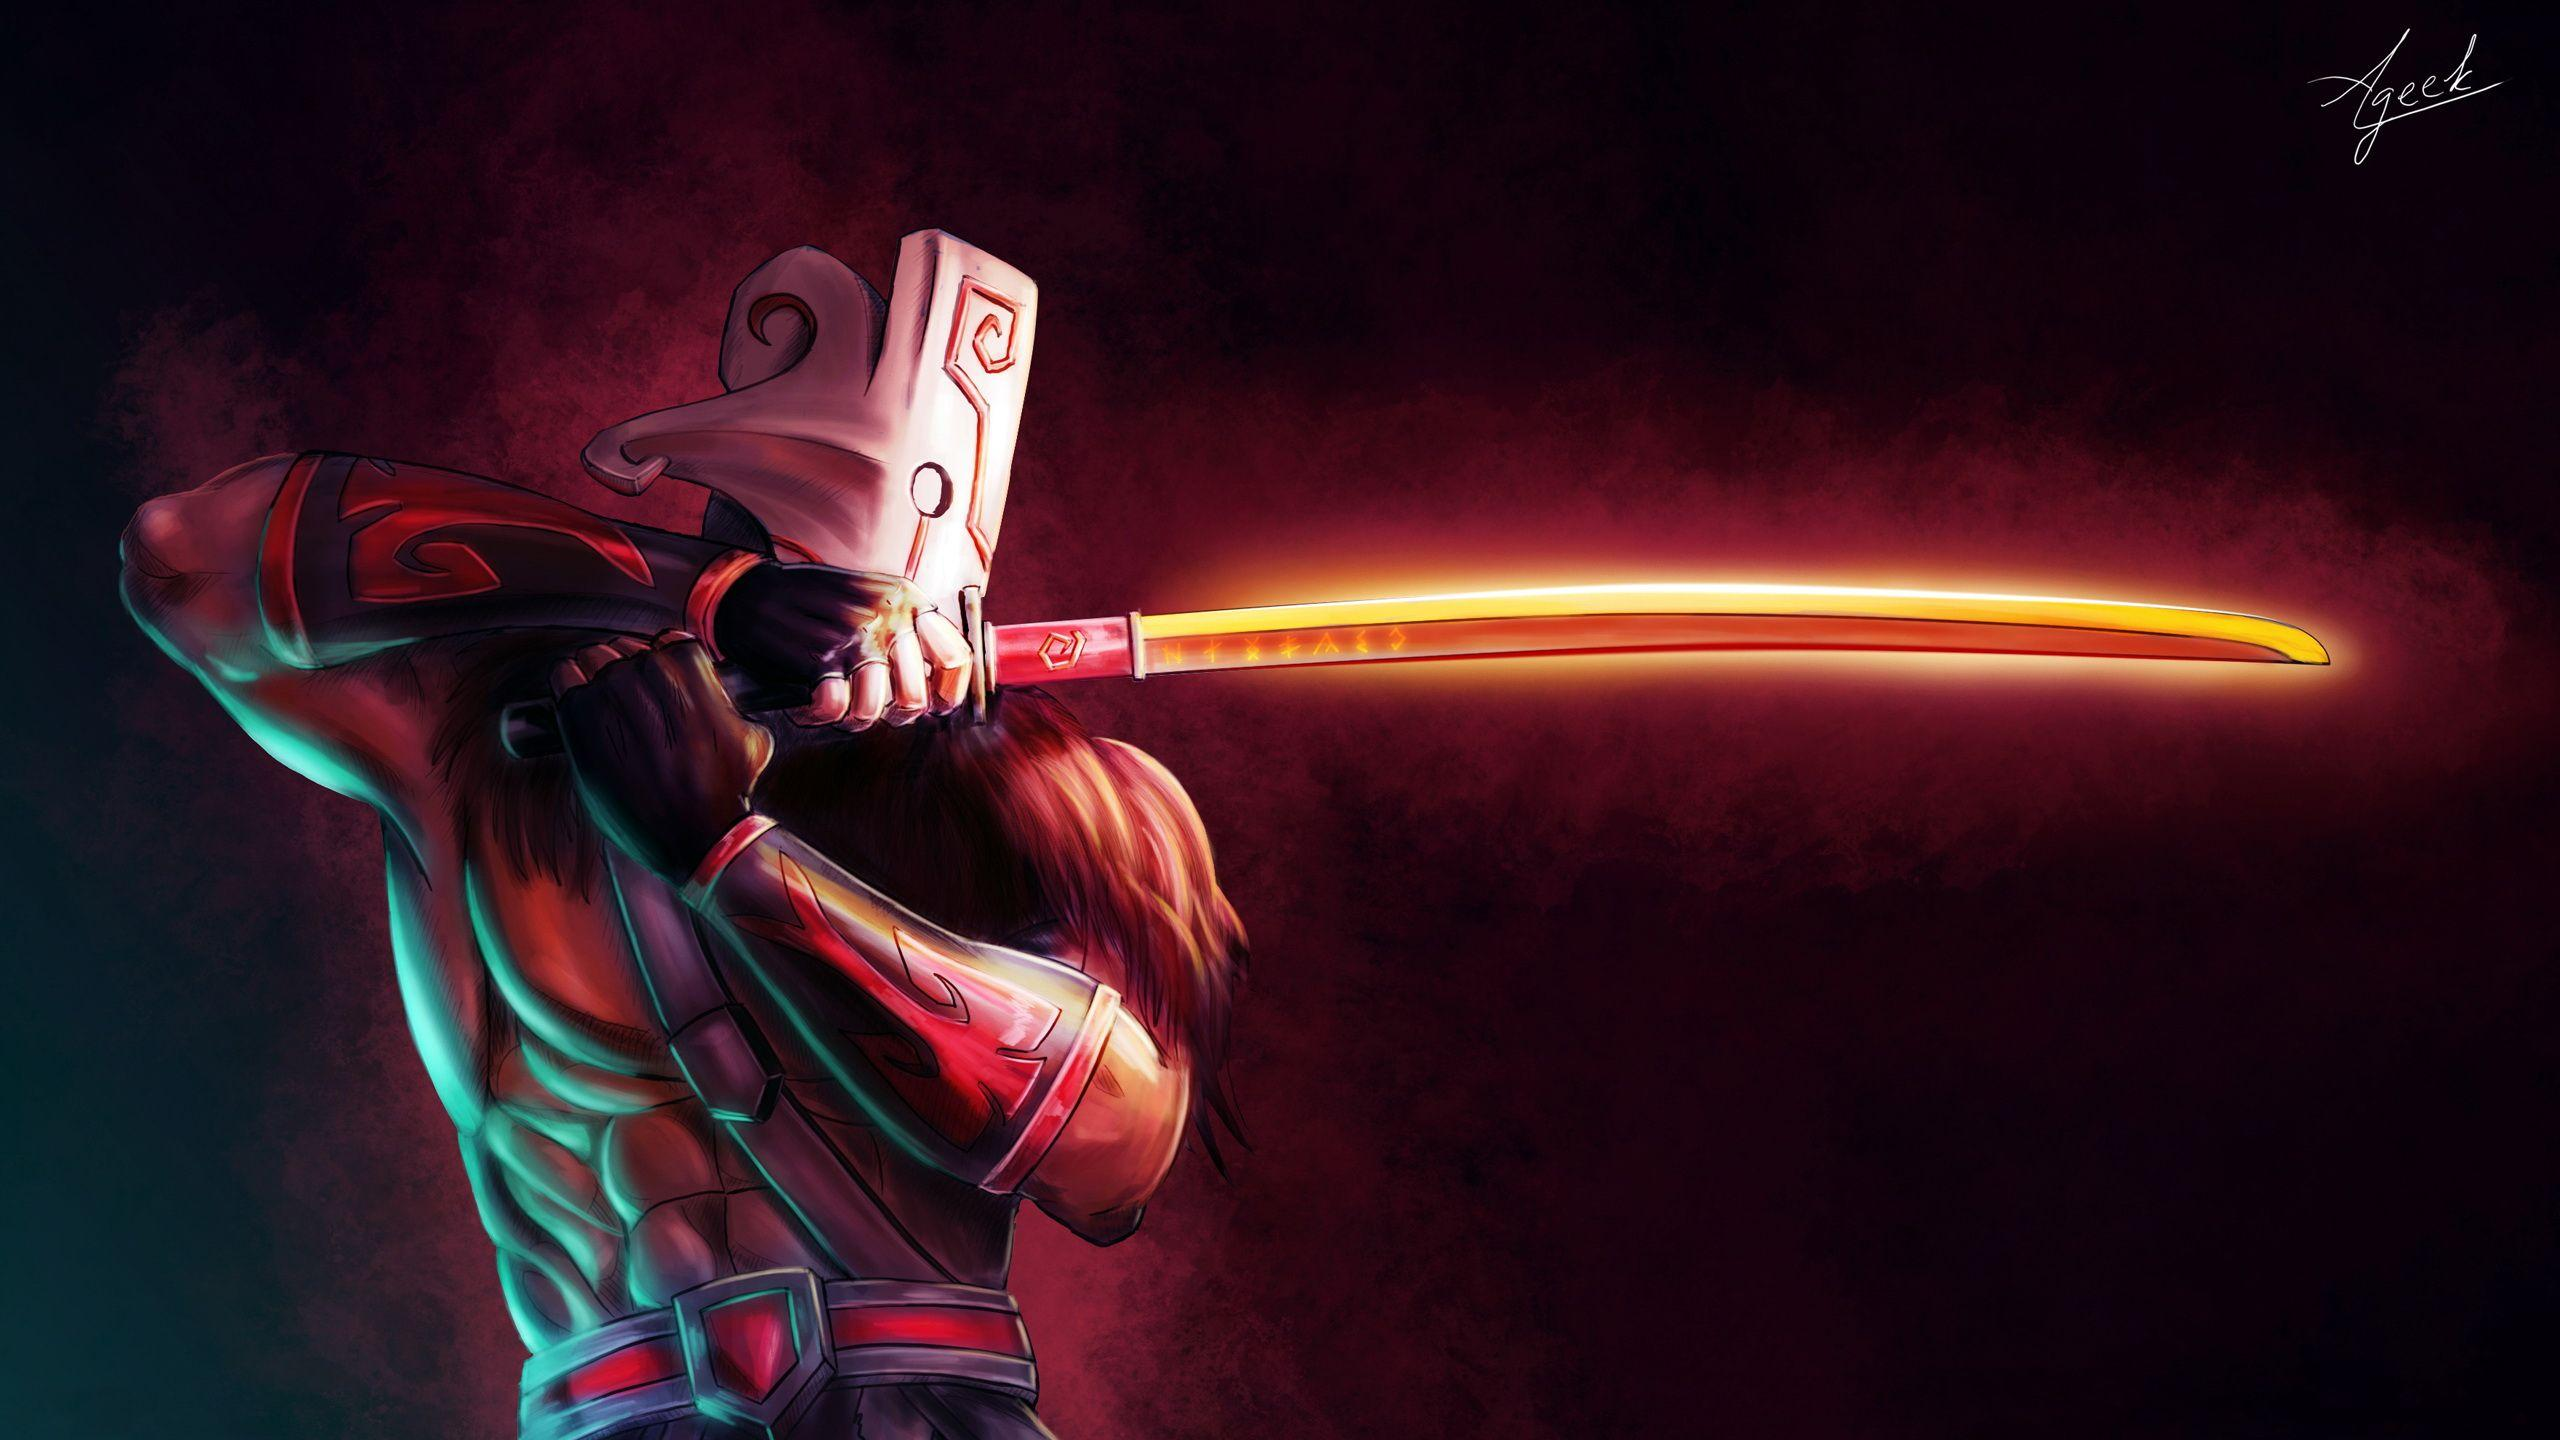 9 Juggernaut (Dota 2) HD Wallpapers | Background Images - Wallpaper ...